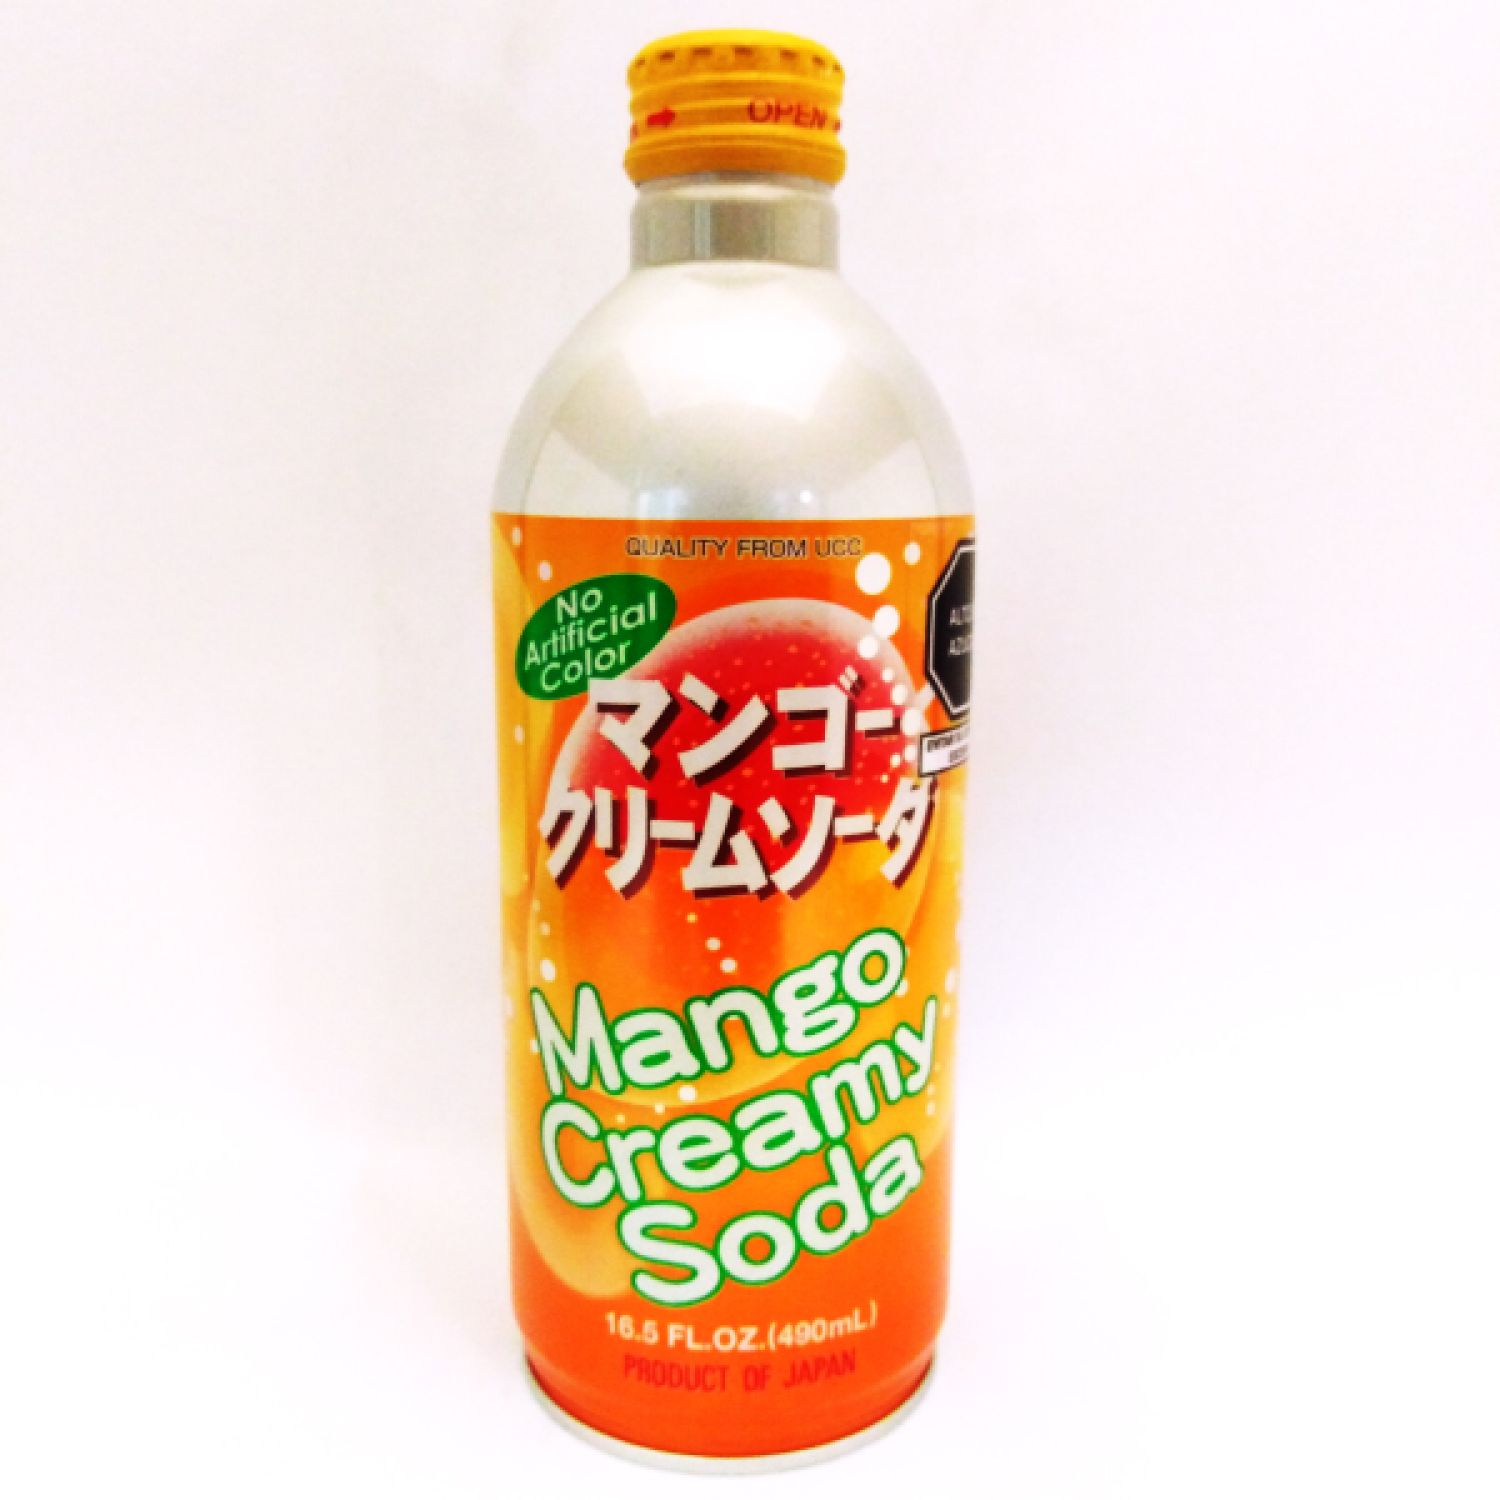 UCC UCC MANGO CREAM SODA CAN SIN COLOR El jugo espumoso